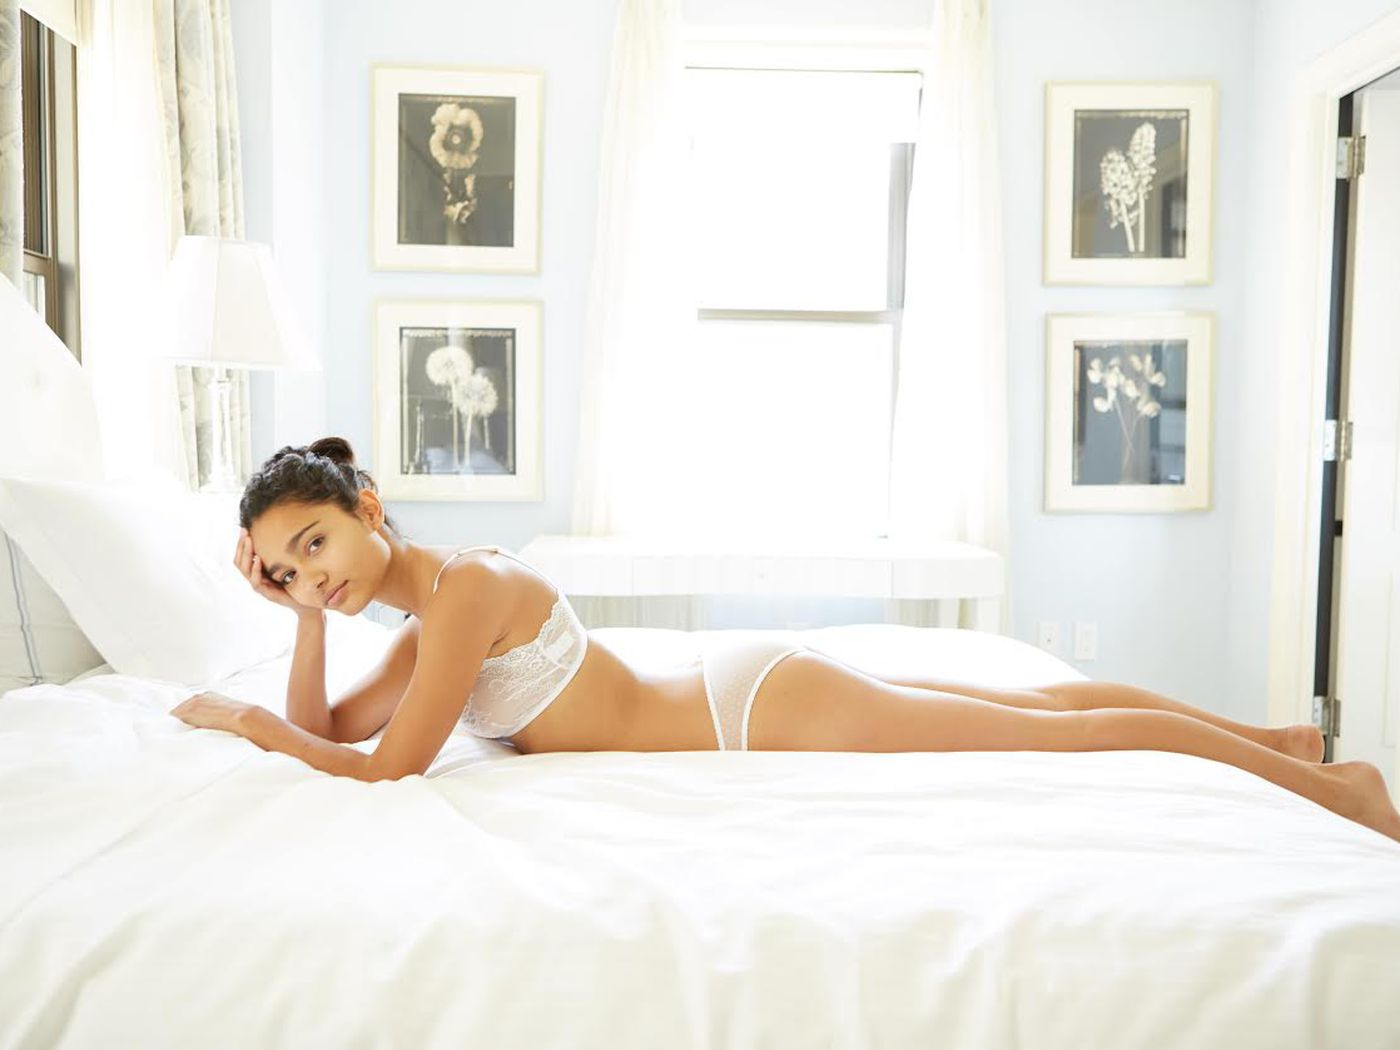 a654a5a3be58 The Best Places to Shop for Bras, Lingerie, and Underwear - Vox